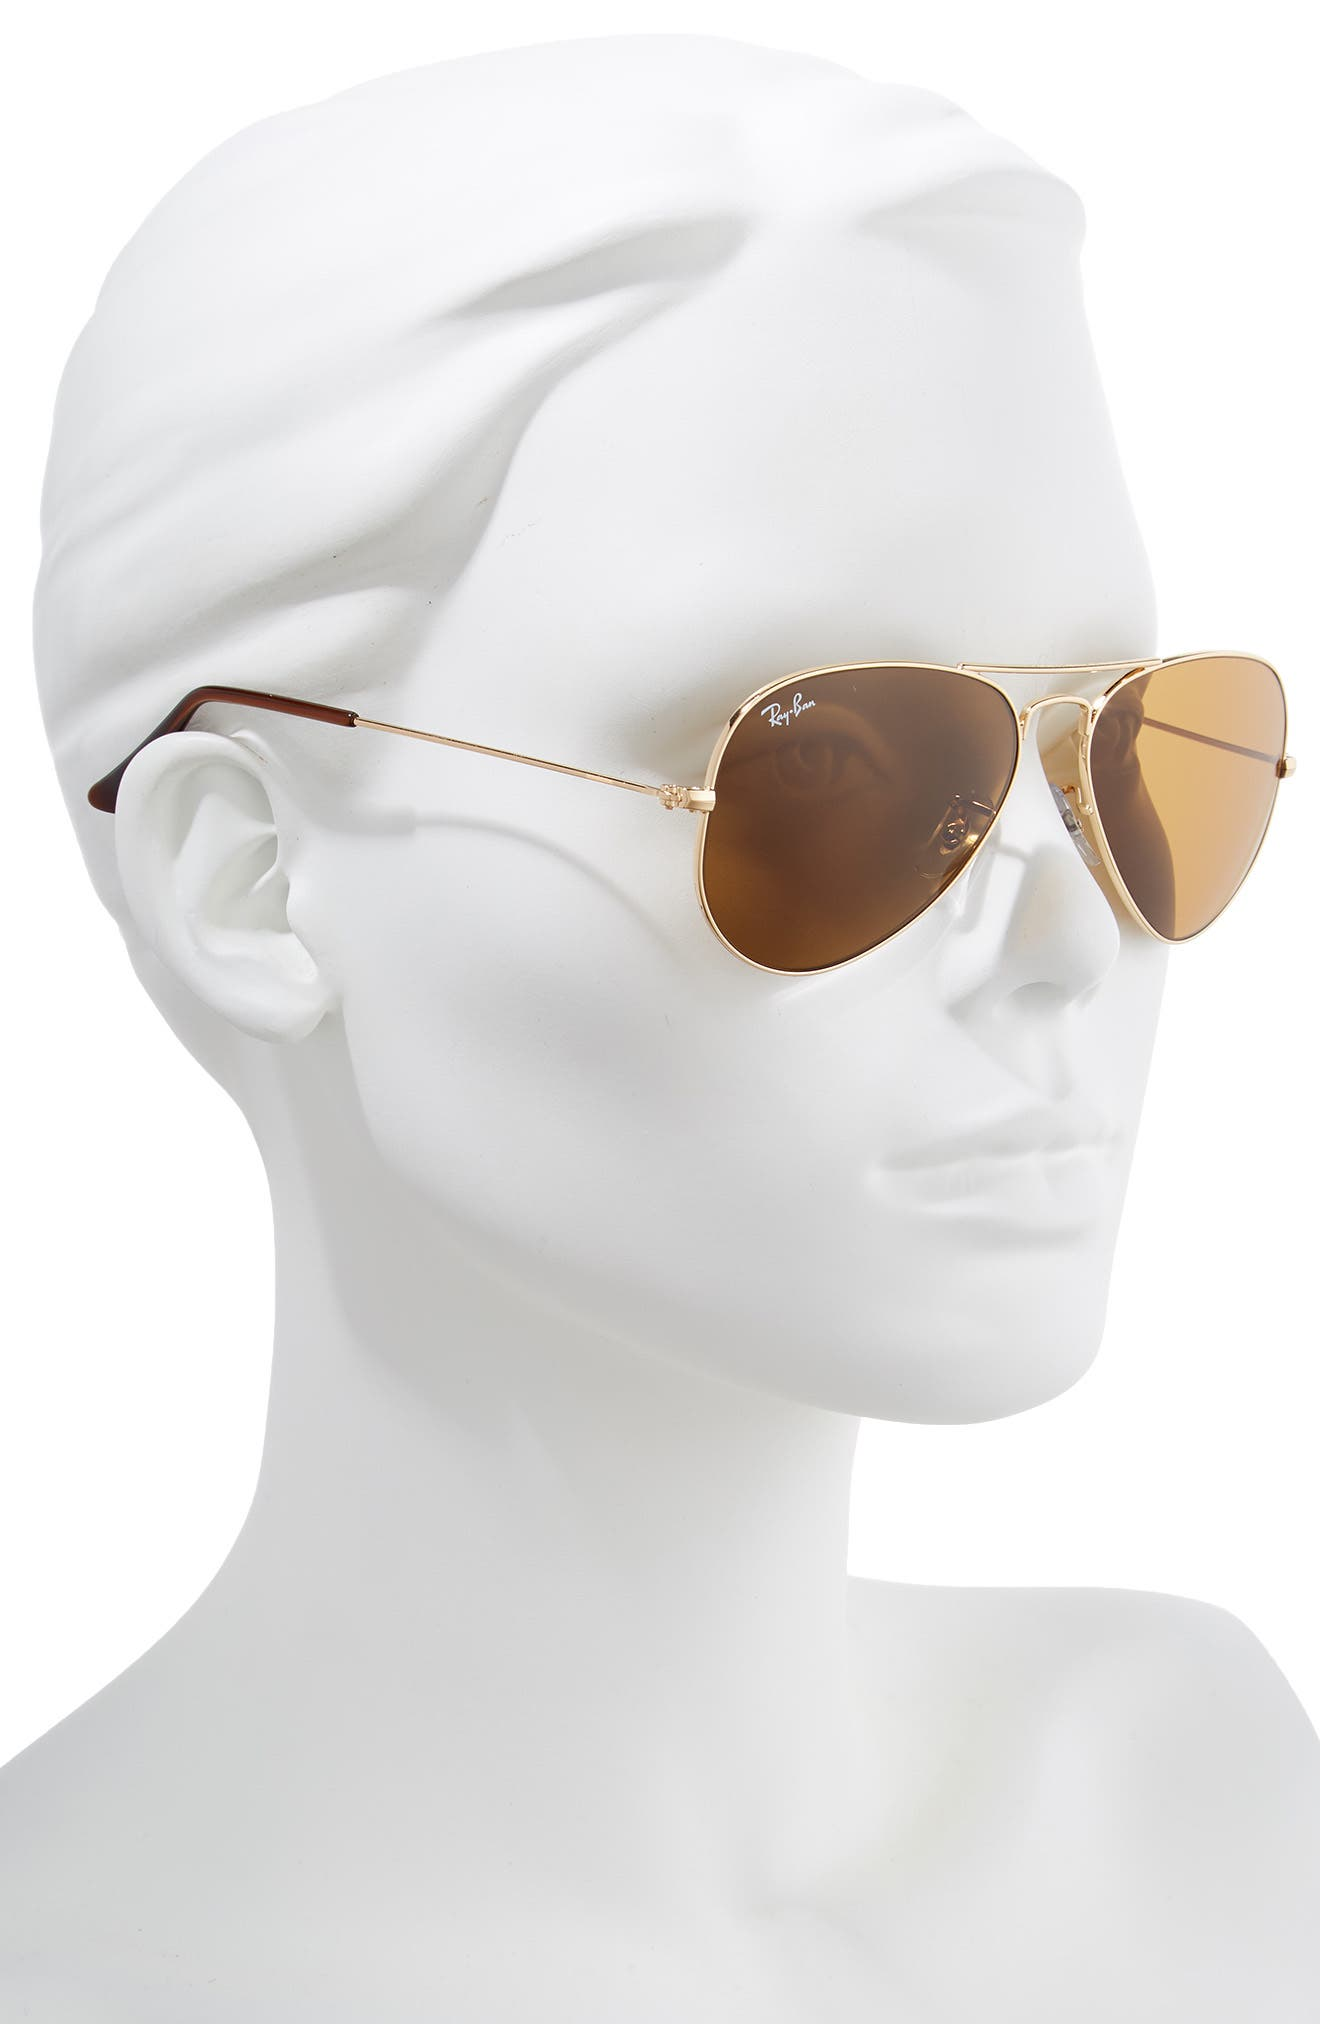 Small Original 55mm Aviator Sunglasses,                             Alternate thumbnail 2, color,                             GOLD/ BROWN SOLID